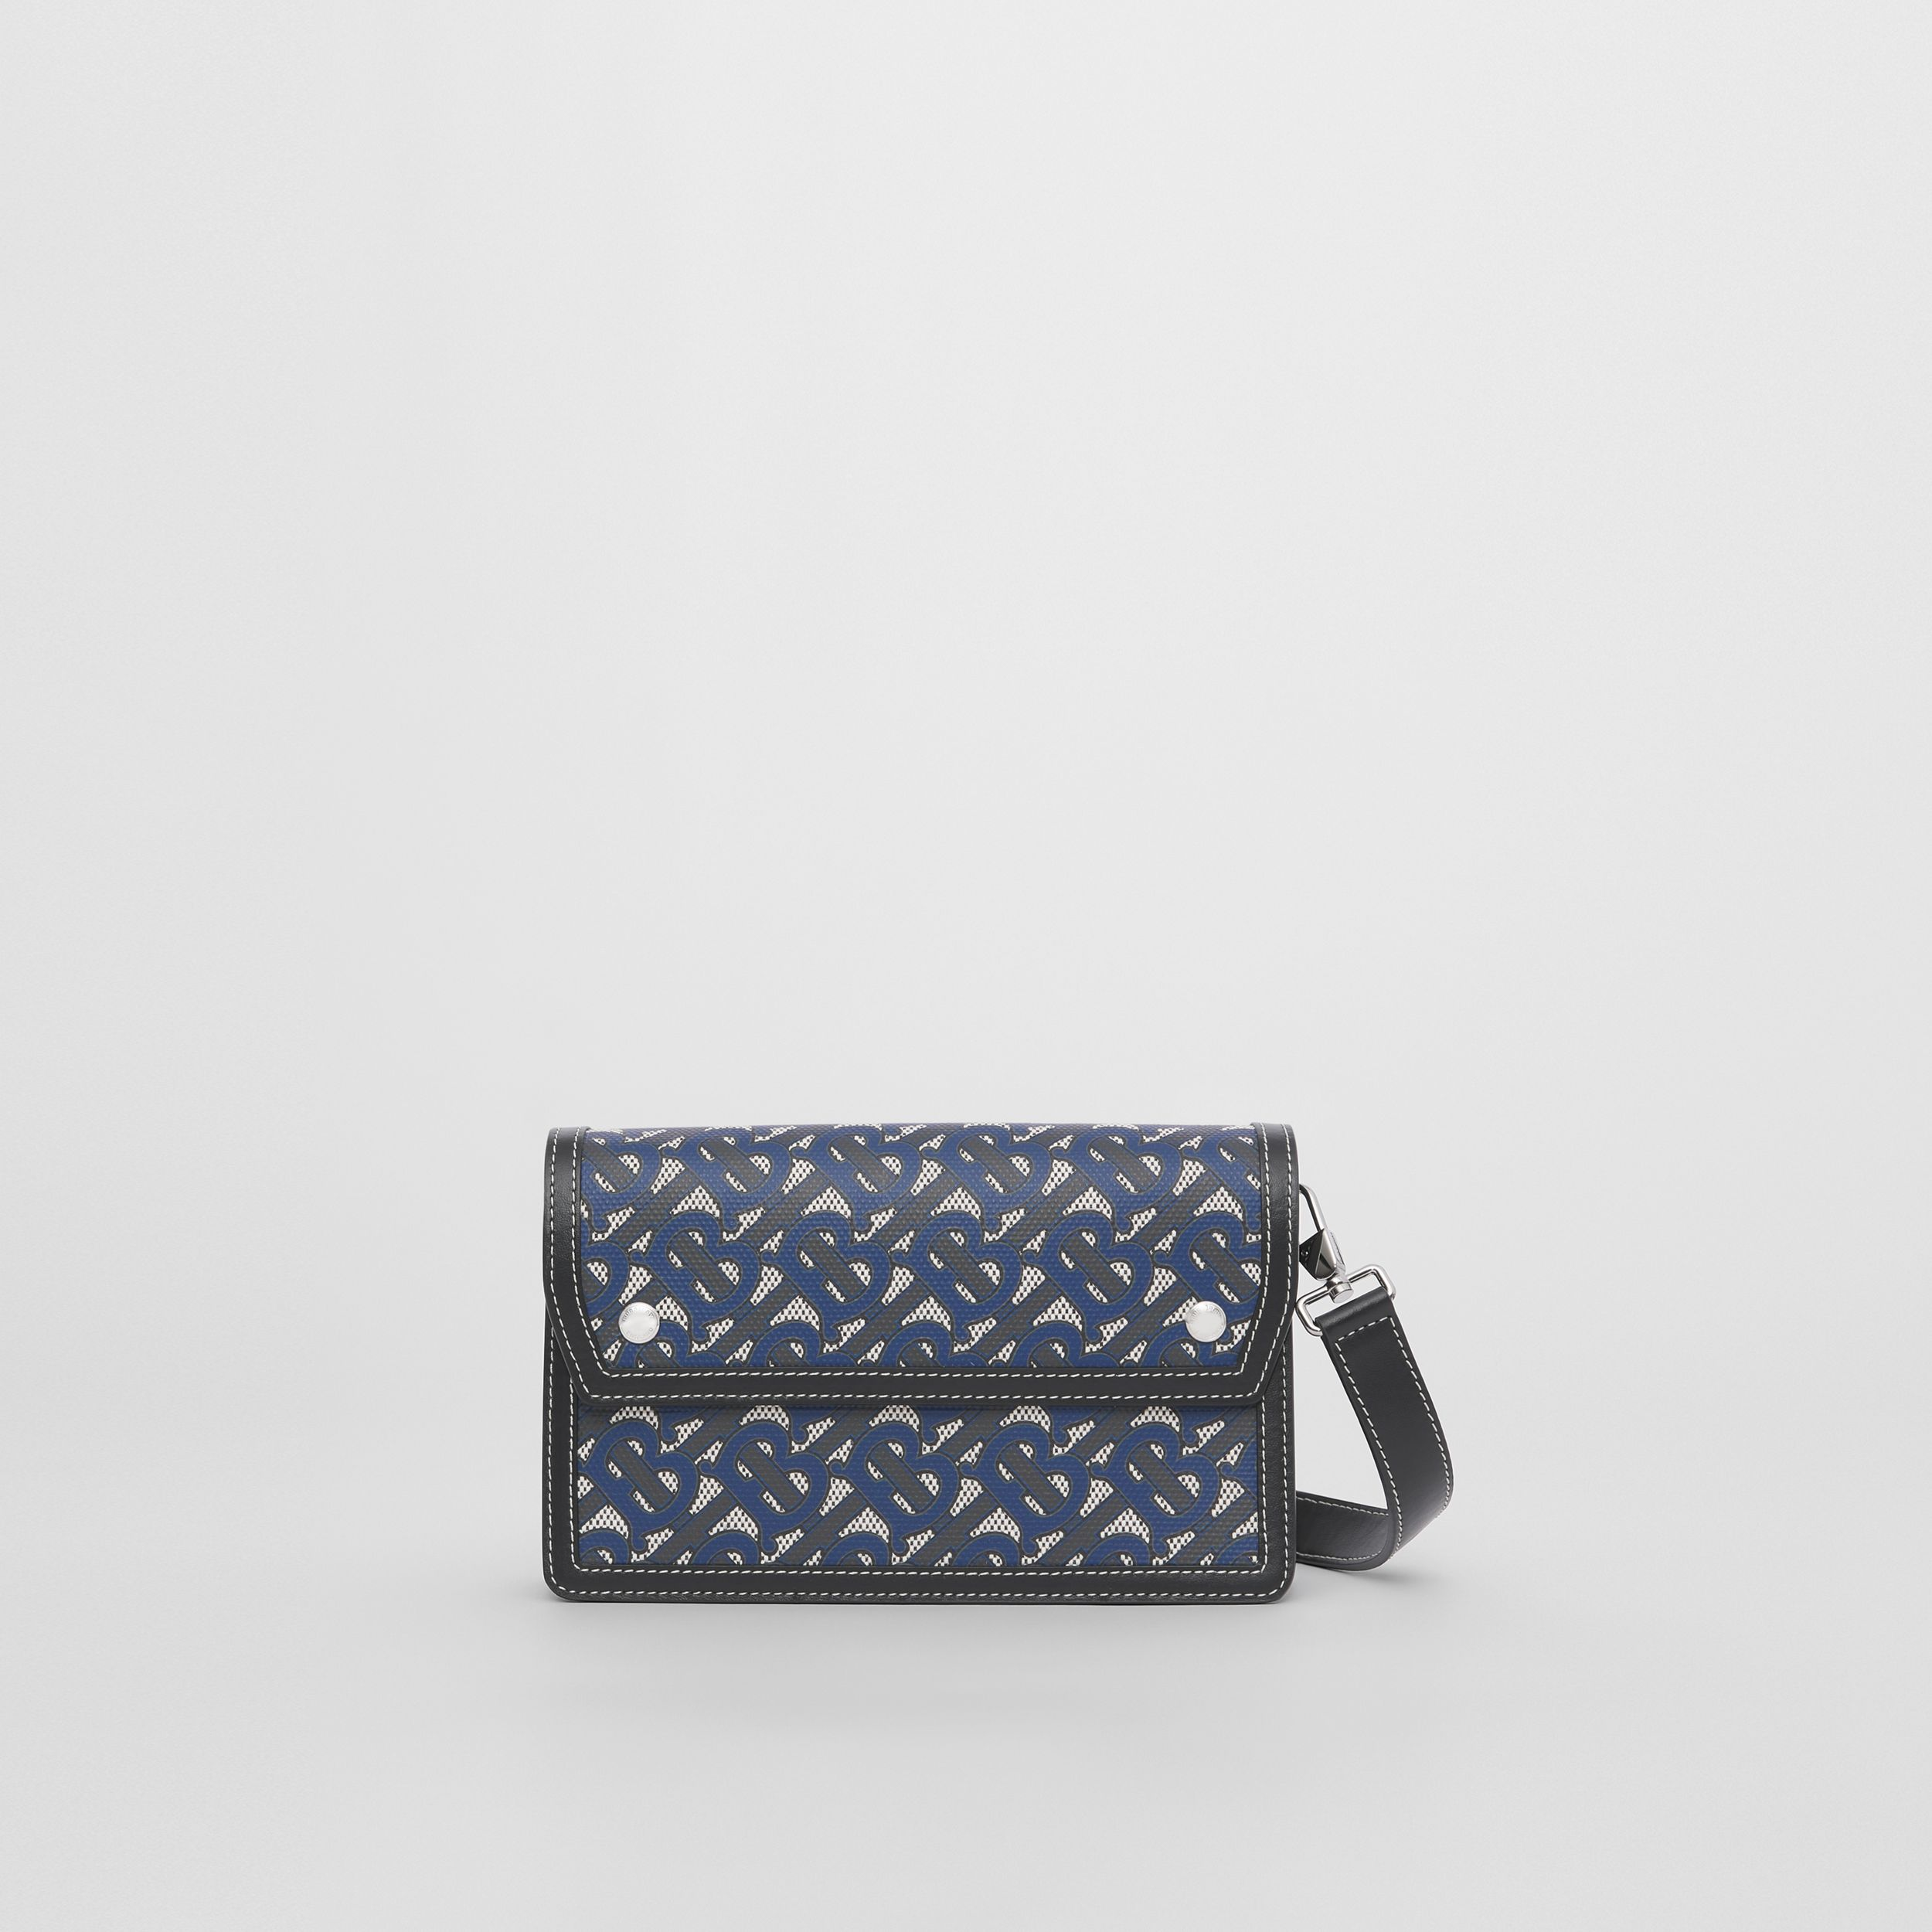 Monogram Print Canvas and Leather Crossbody Bag in Ink Blue - Men | Burberry - 1